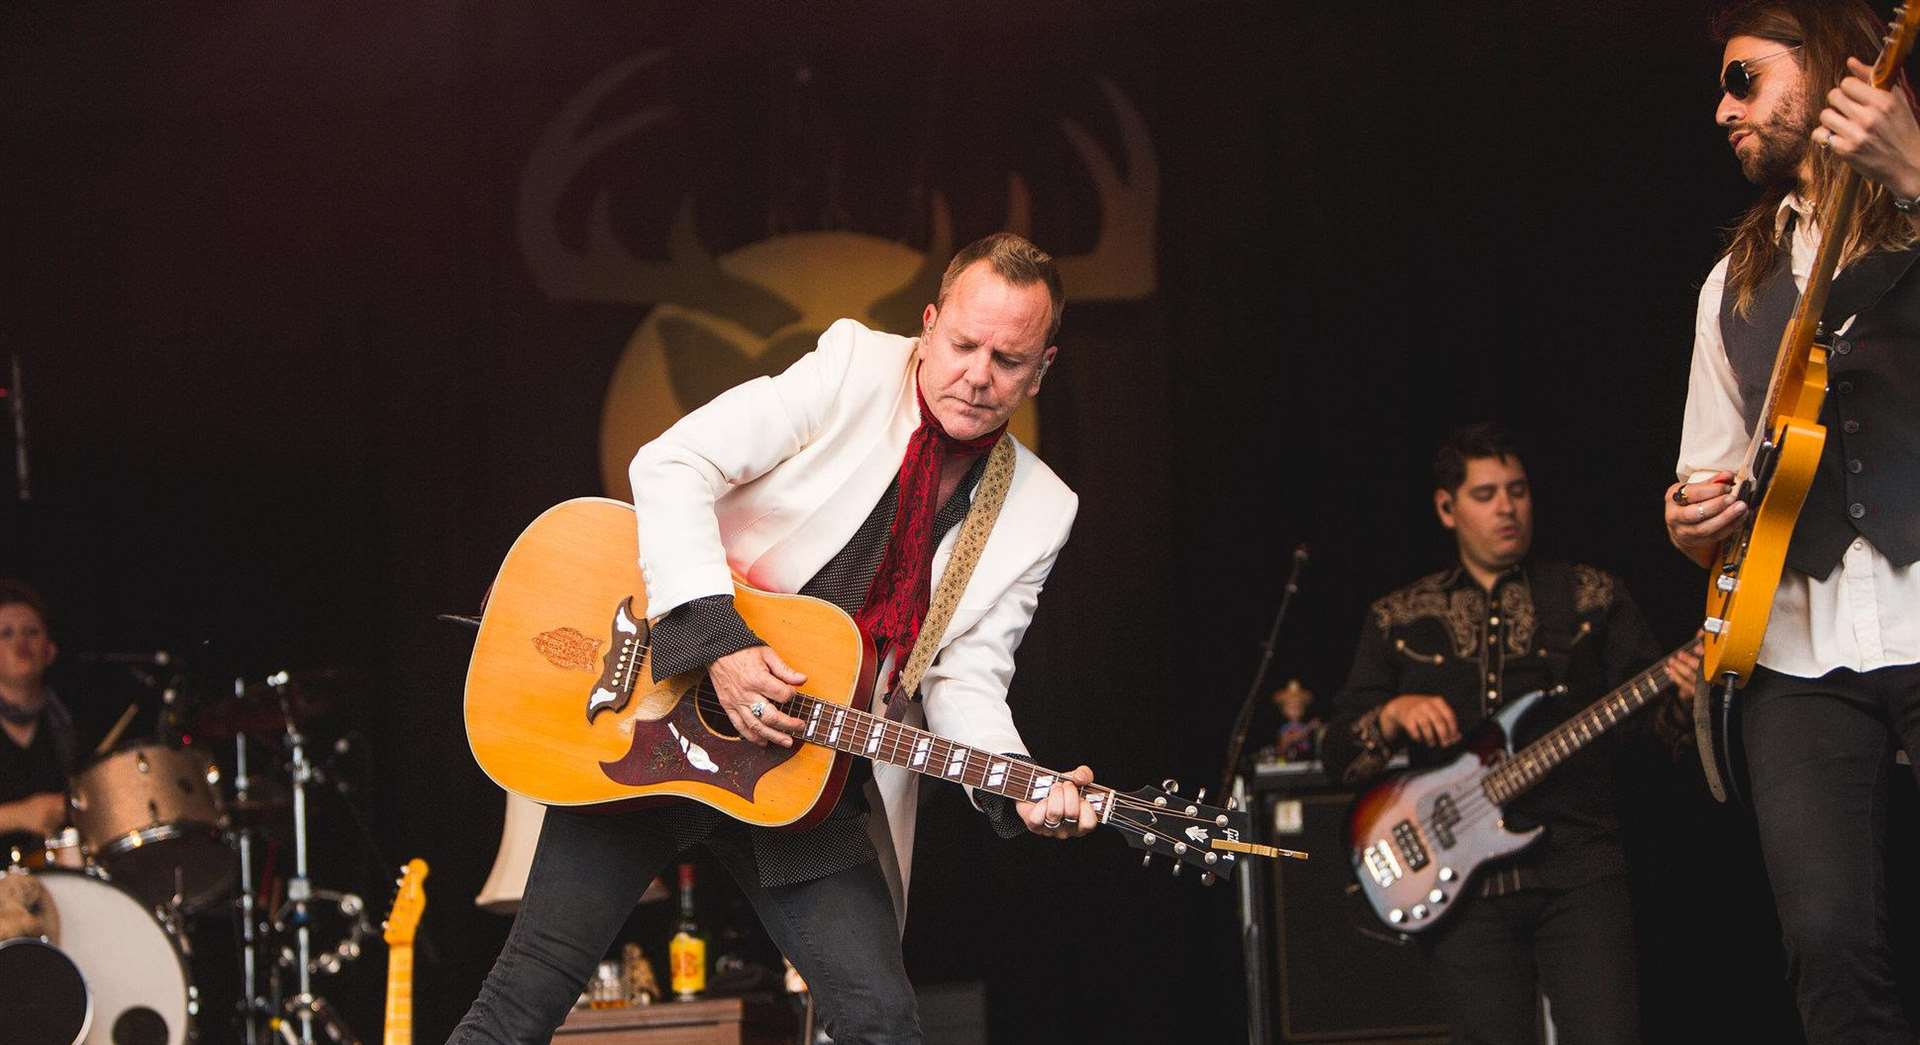 Kiefer Sutherland performed at the first Black Deer Festival Picture: Louise Roberts